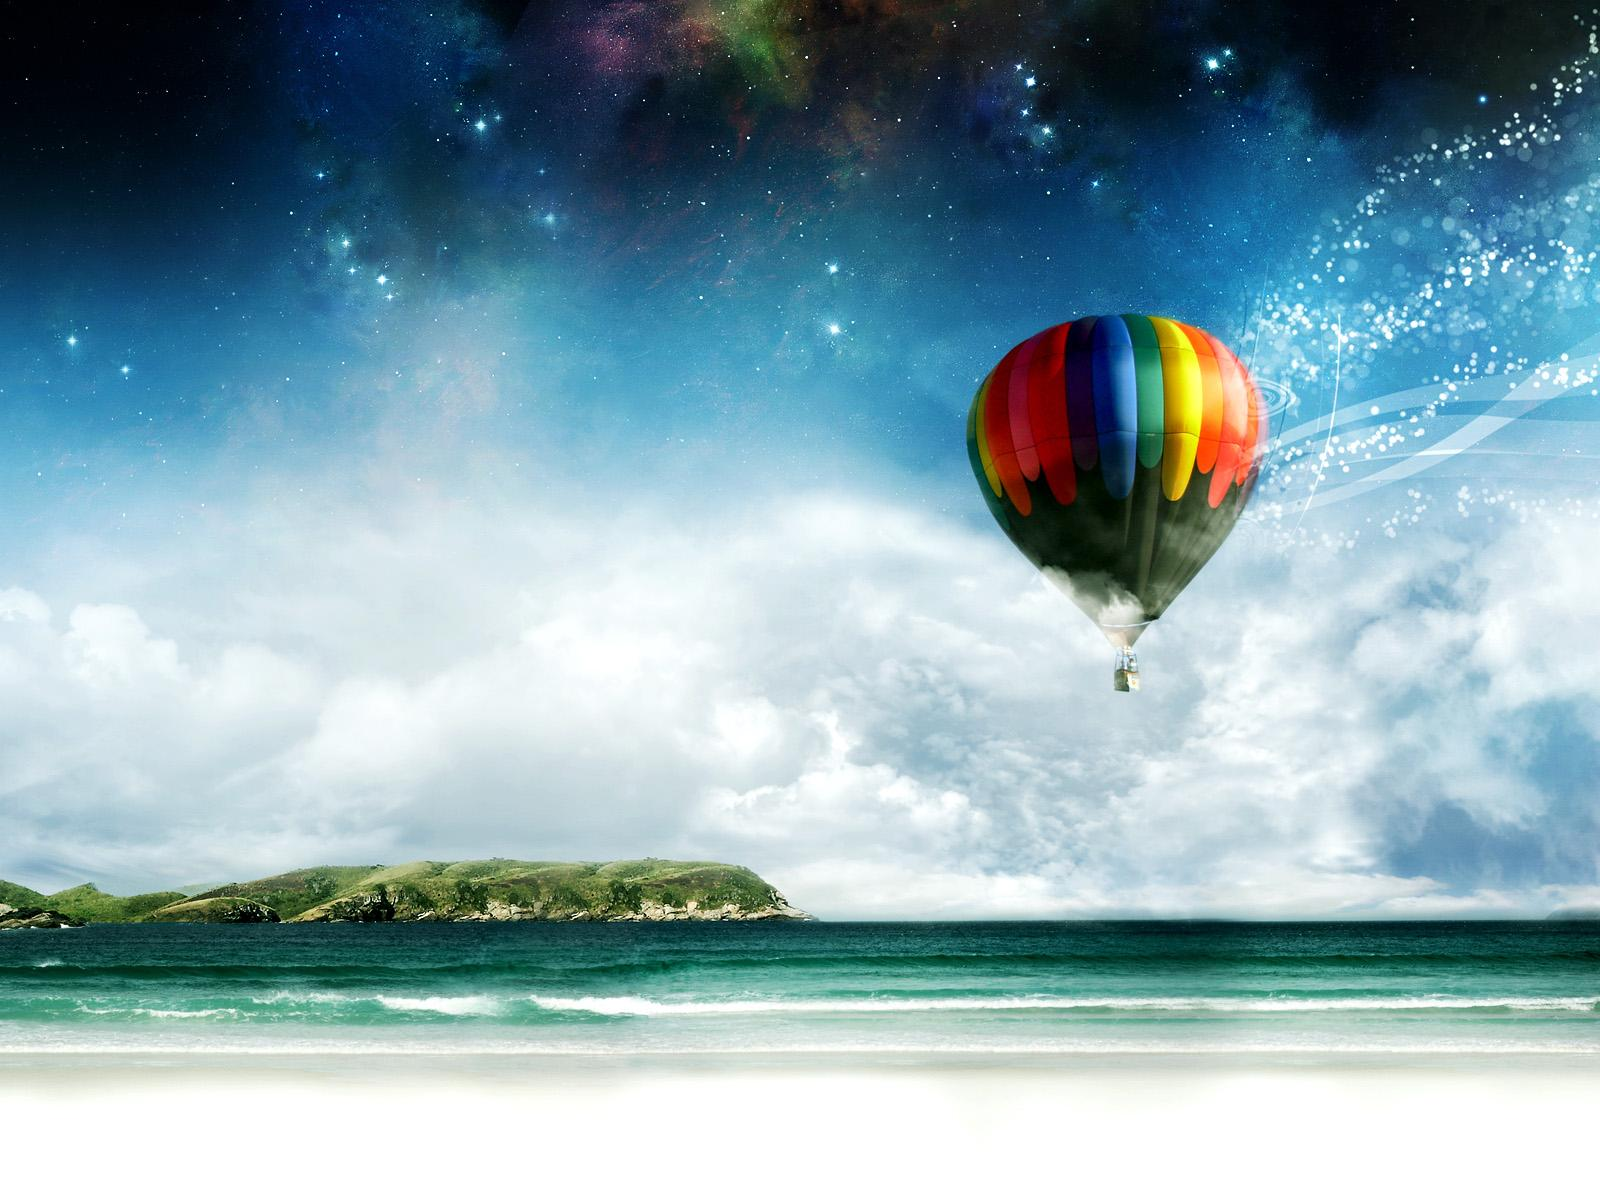 Free Hot Air Balloon Wallpaper ...